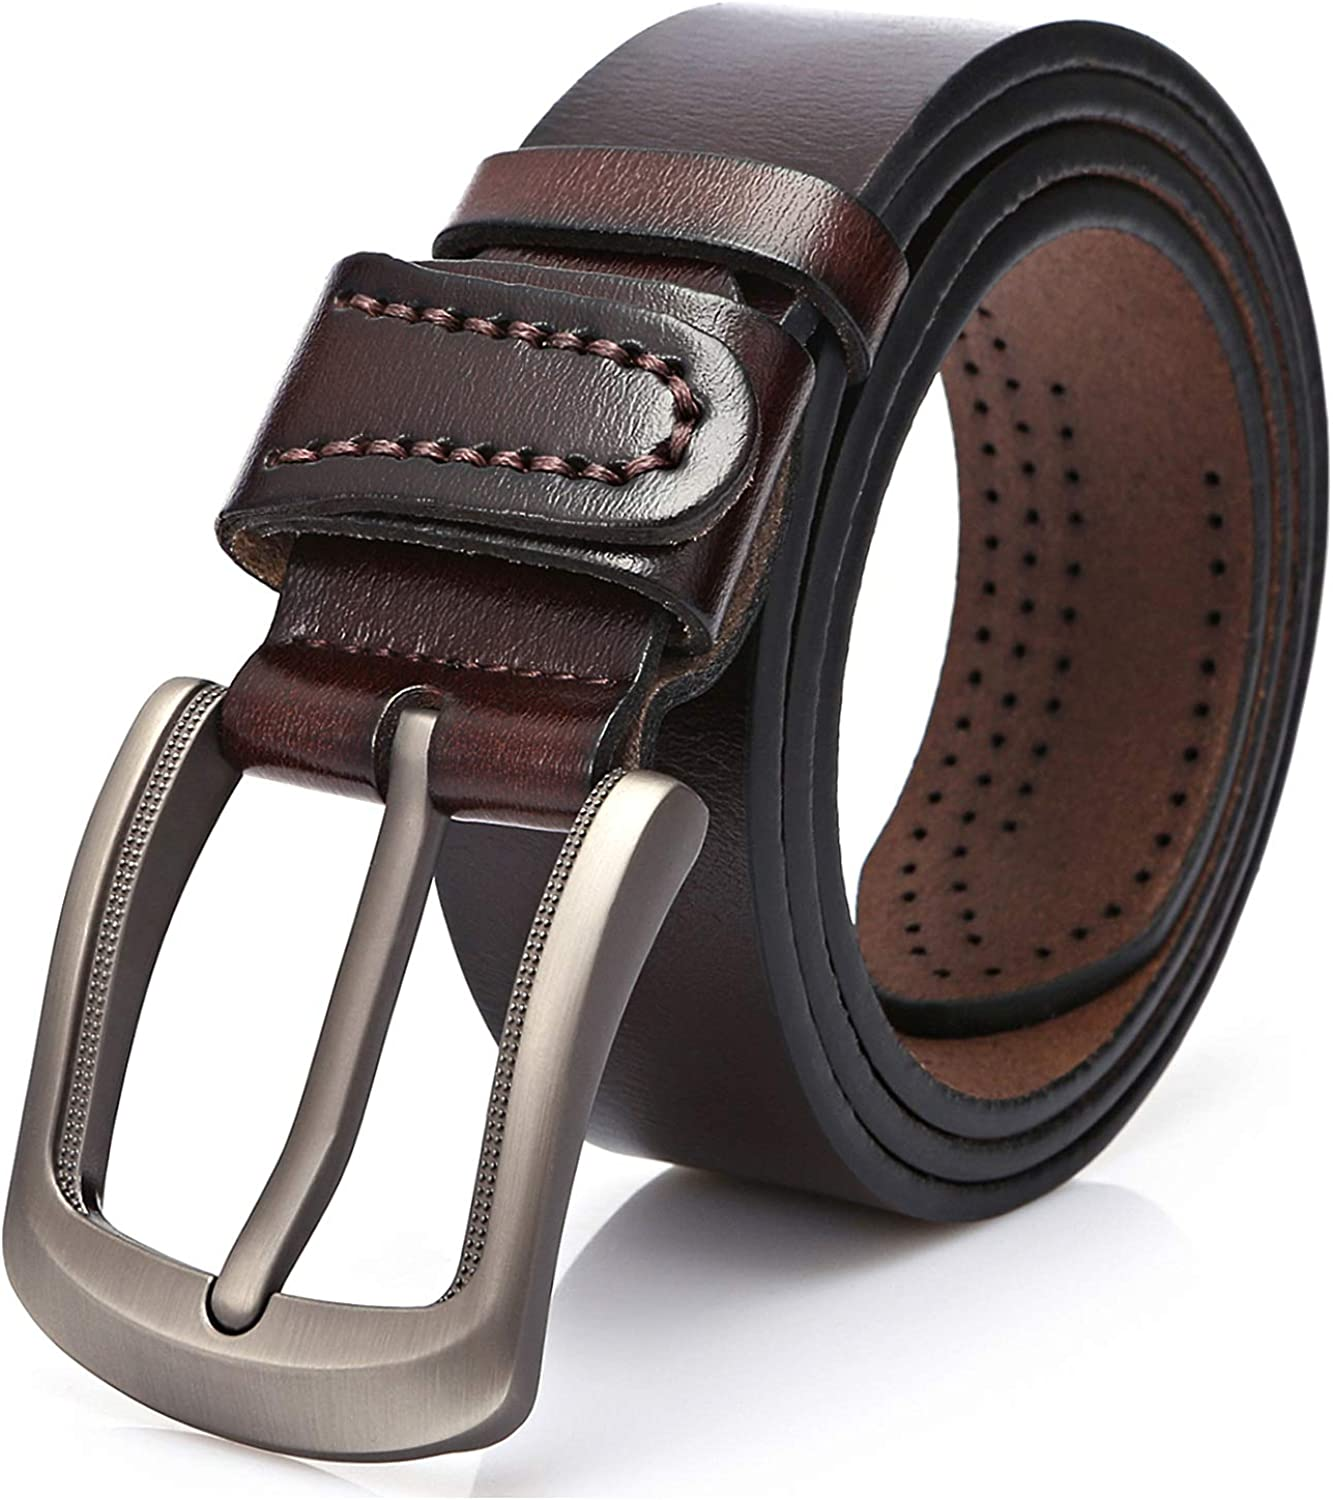 Sunahead Men's Genuine Leather Belt for Casual Wear and Jeans